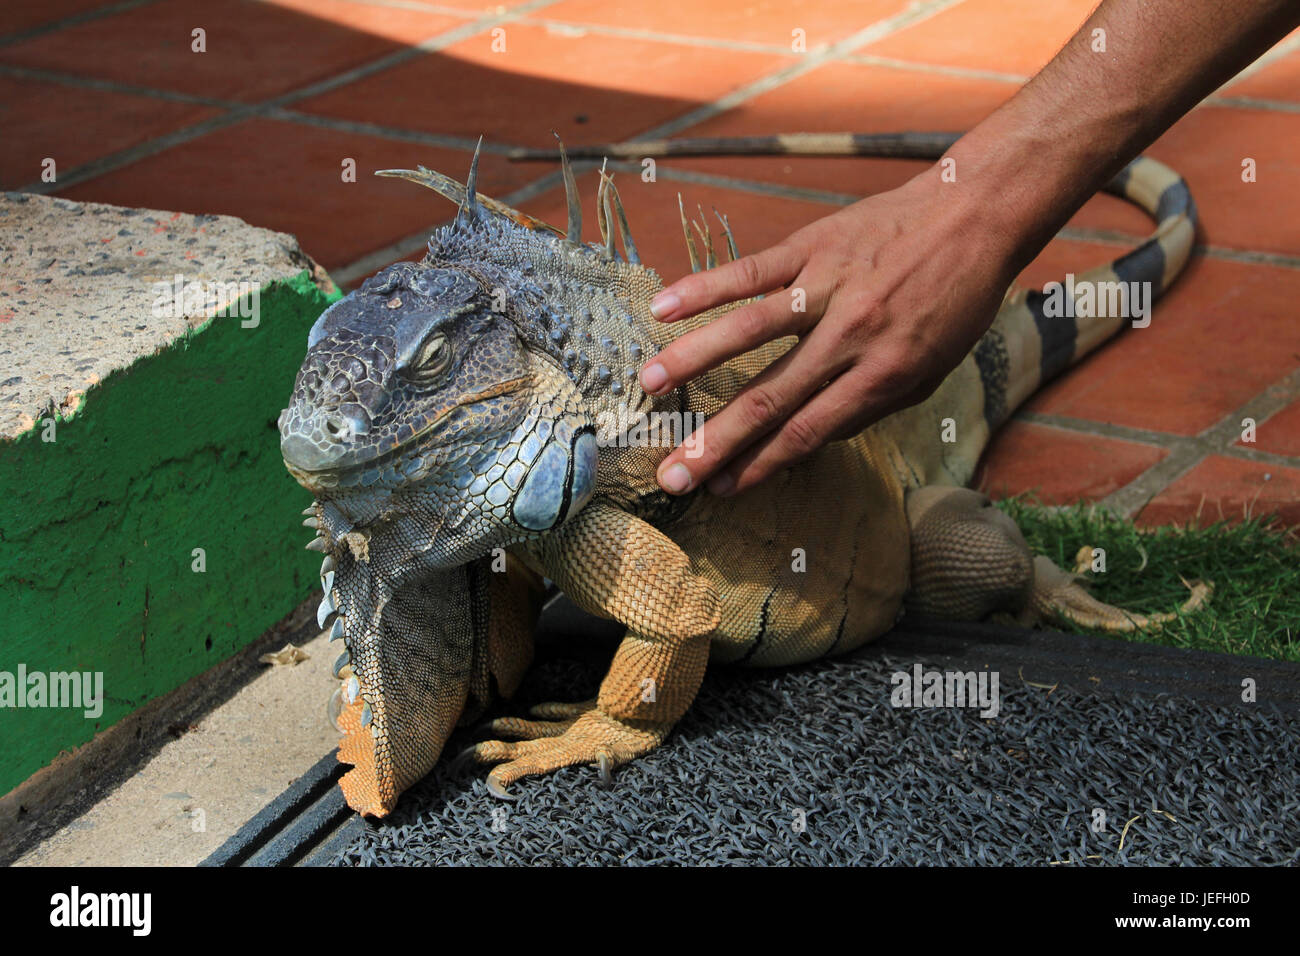 Green iguana, iguana iguana, also known as Common Iguana or American Iguana touched by human, El Salvador - Stock Image